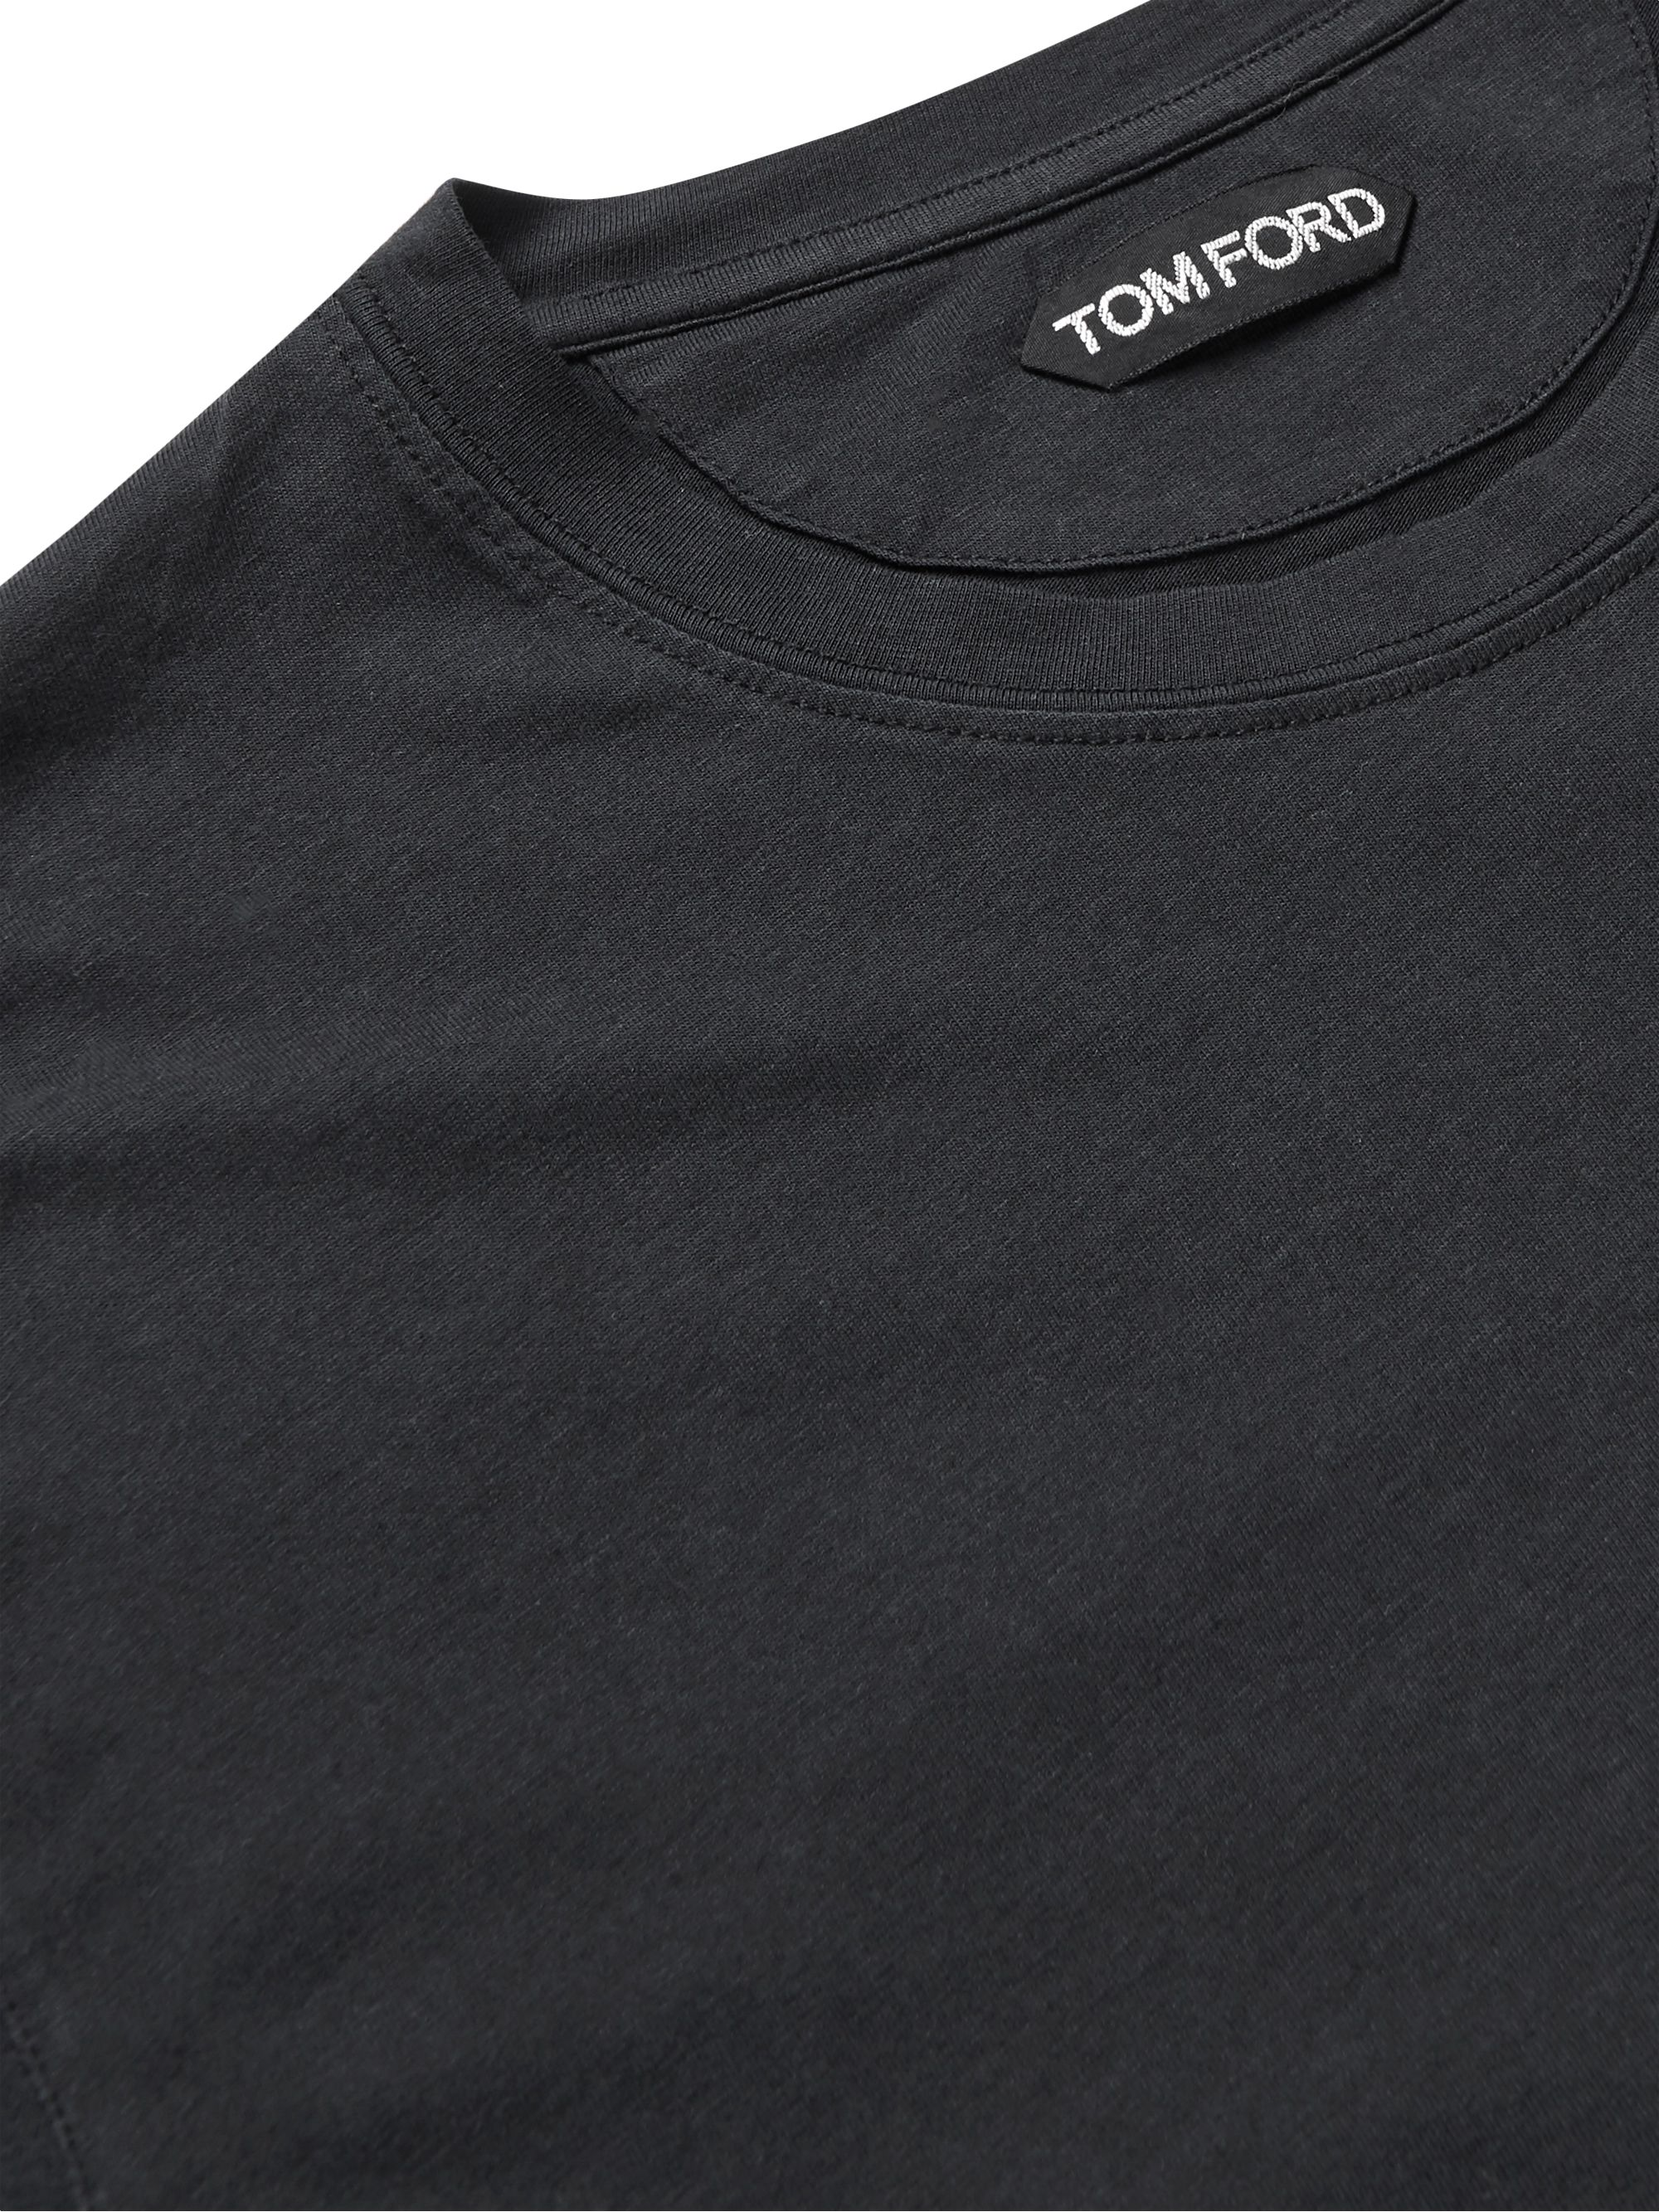 Black Lyocell And Cotton-blend T-shirt | Tom Ford